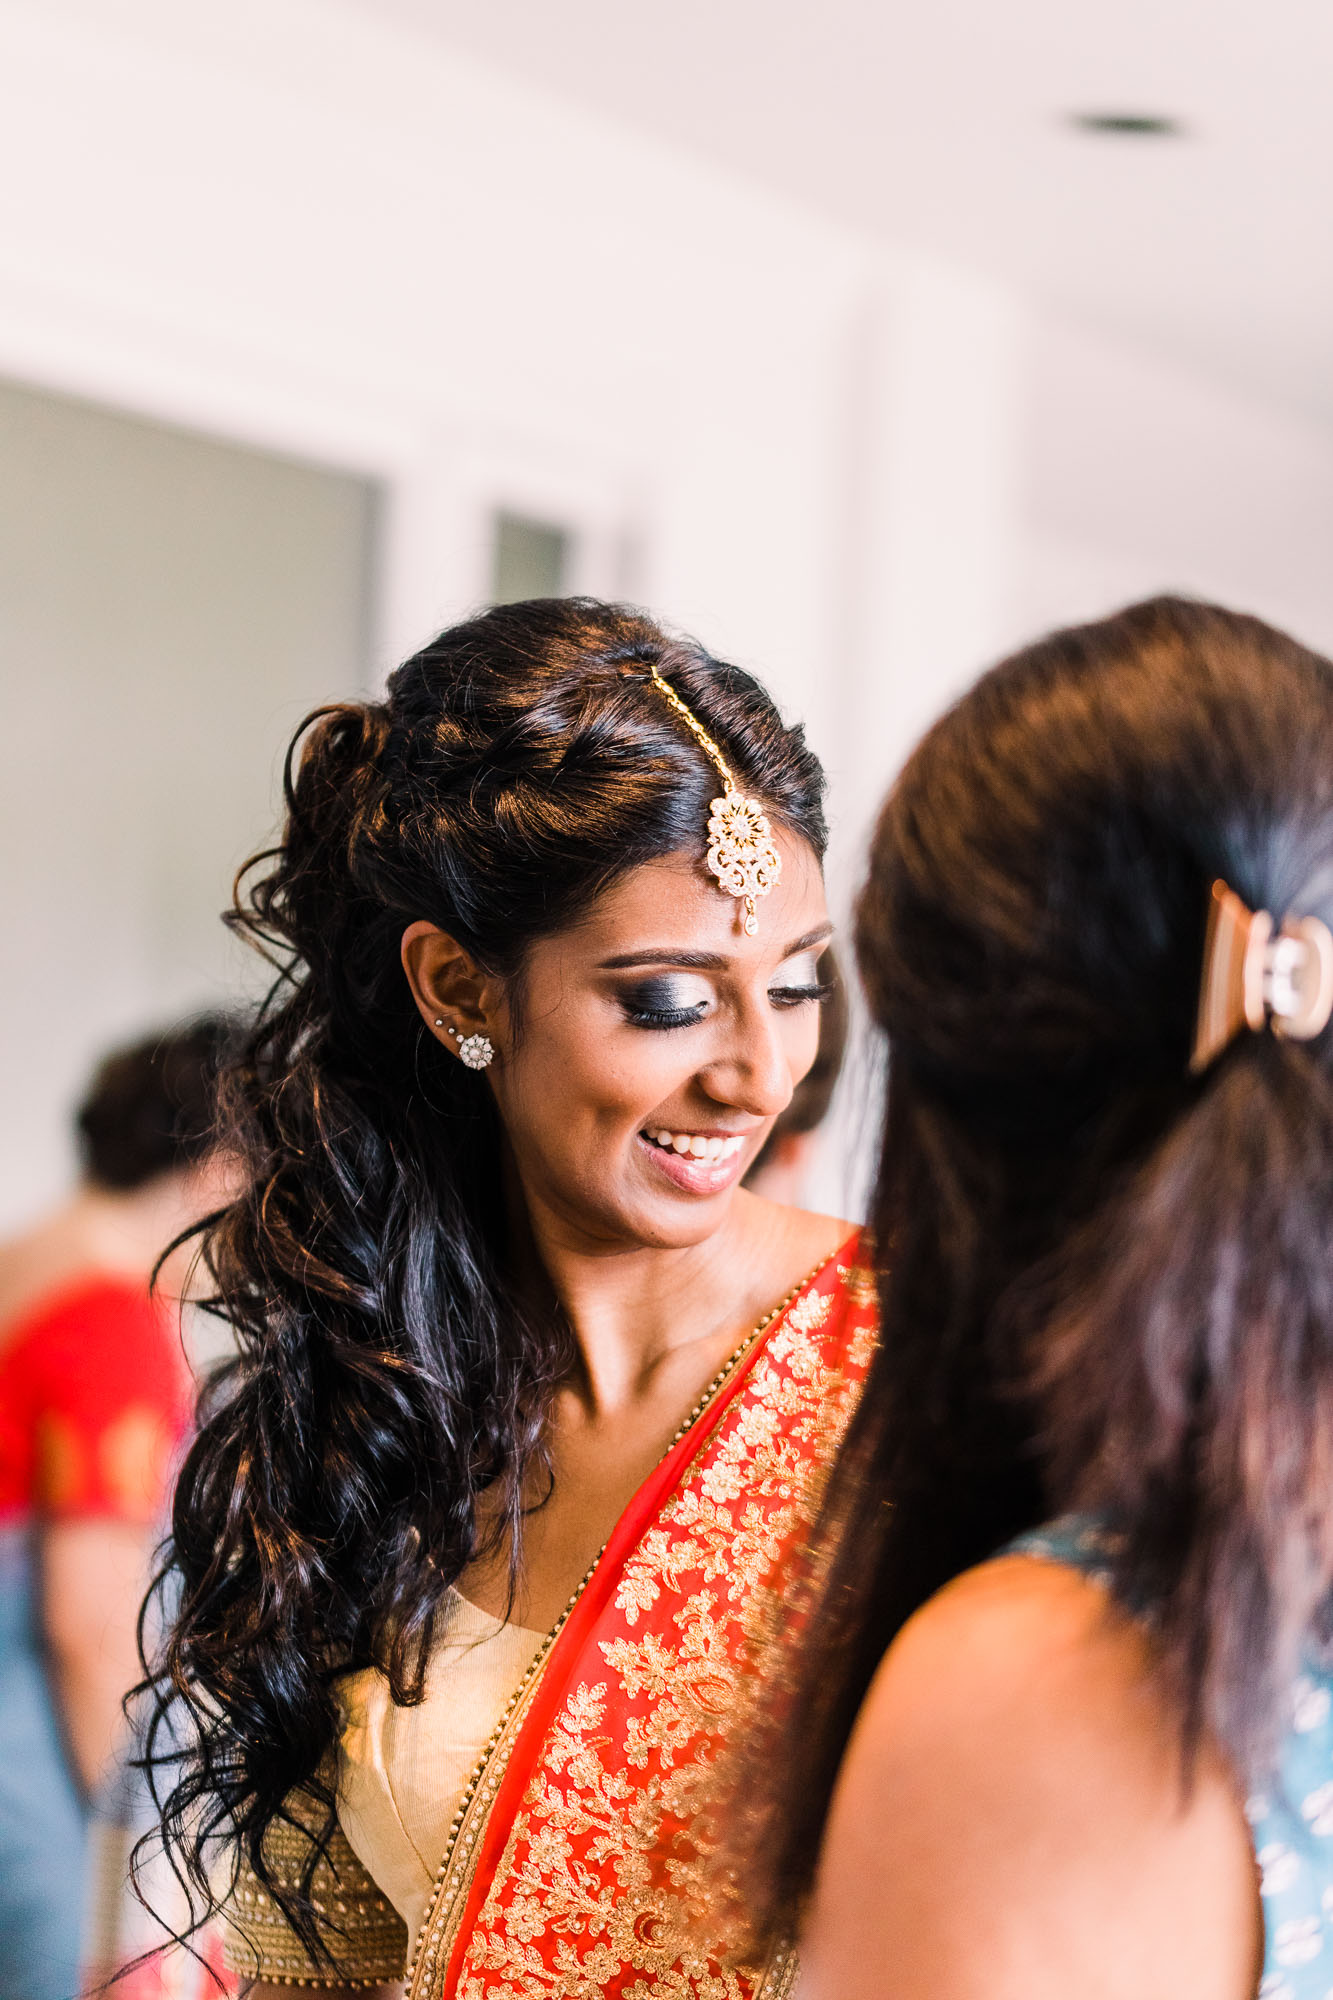 Scranton_Radisson_Hindu_Wedding-6361.jpg